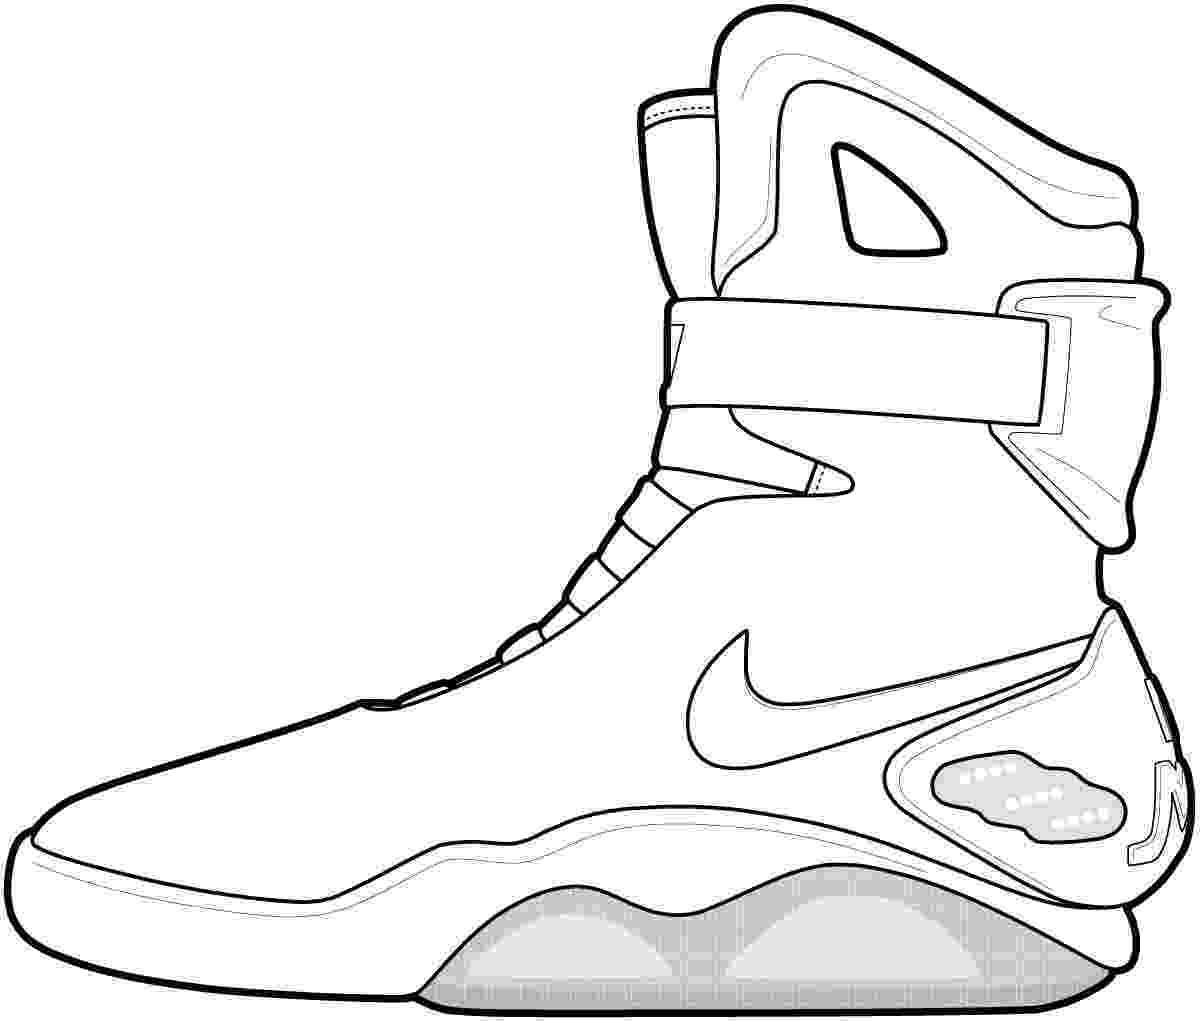 coloring pages shoes sketchbook by kendra shedenhelm free coloring pages pages coloring shoes